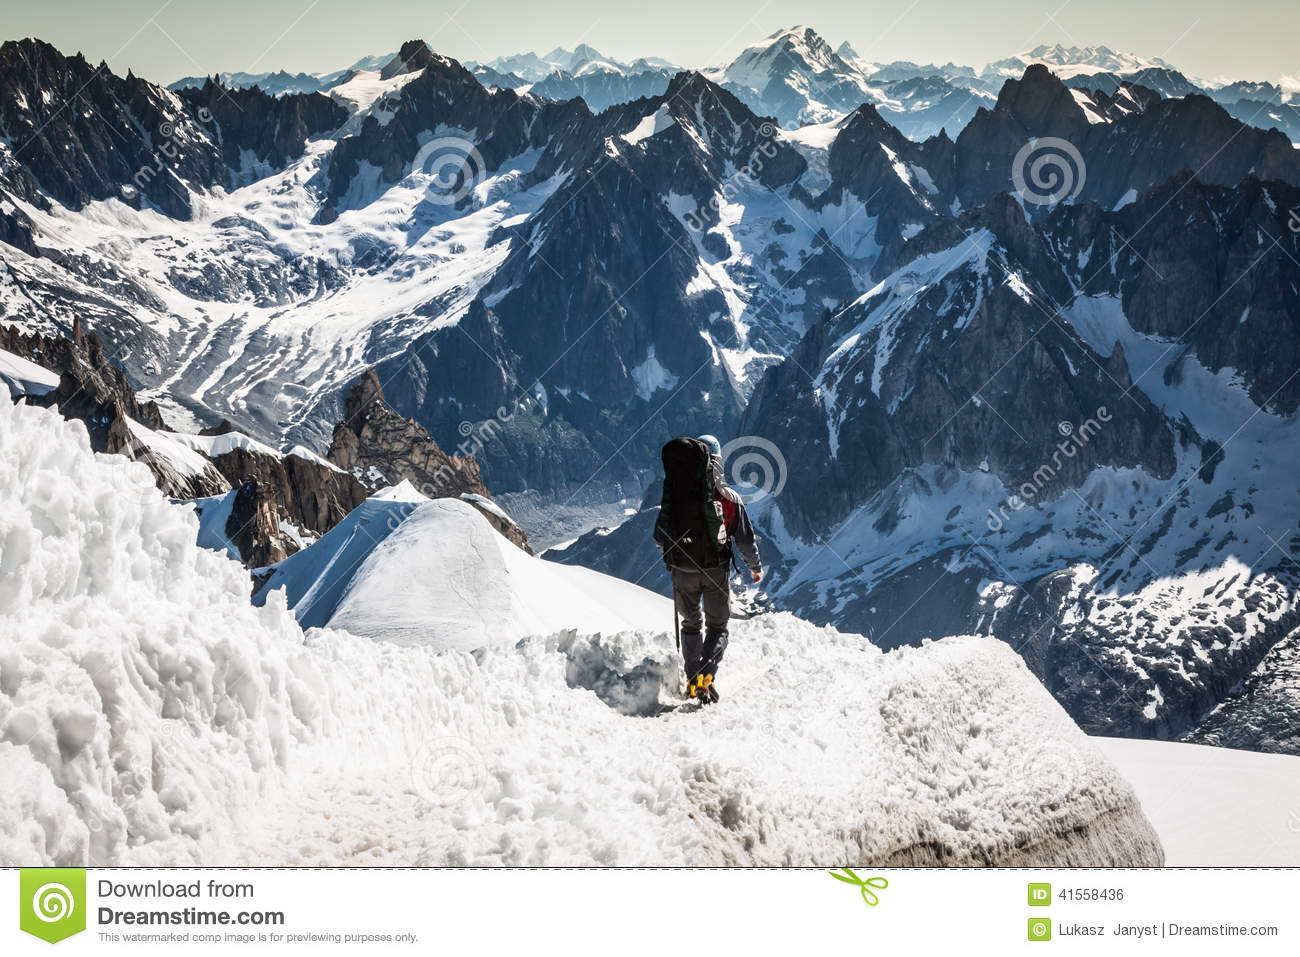 chamonix in the french alps essay Skiing french alps - chamonix tourist office : holiday in chamonix, french alps prepare online your mountain holiday in chamonix france and organize your sport activities, sports select the most convinient accommodation and book online.